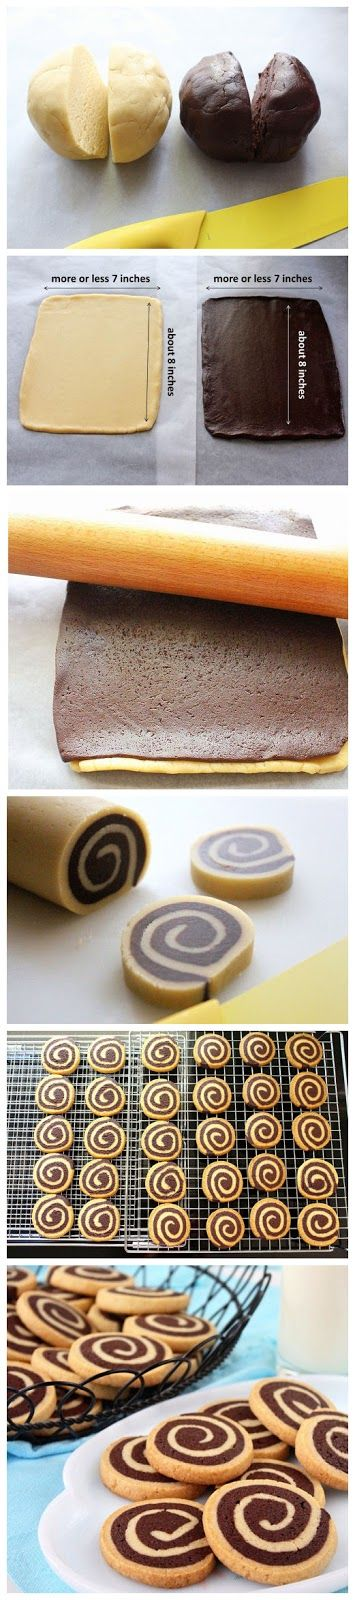 Chocolate Pinwheel Cookies-Ingredients: 1 cup butter 1 cup sugar 2 egg yolks 4 teaspoons vanilla 2 tablespoons milk 3 cups flour 1 tablespoon baking powder 6 tablespoons cocoa mixed with 2 tablespoons melted butter and 2 tablespoons milk. Bake at 163°C for 15 to 20 minutes..